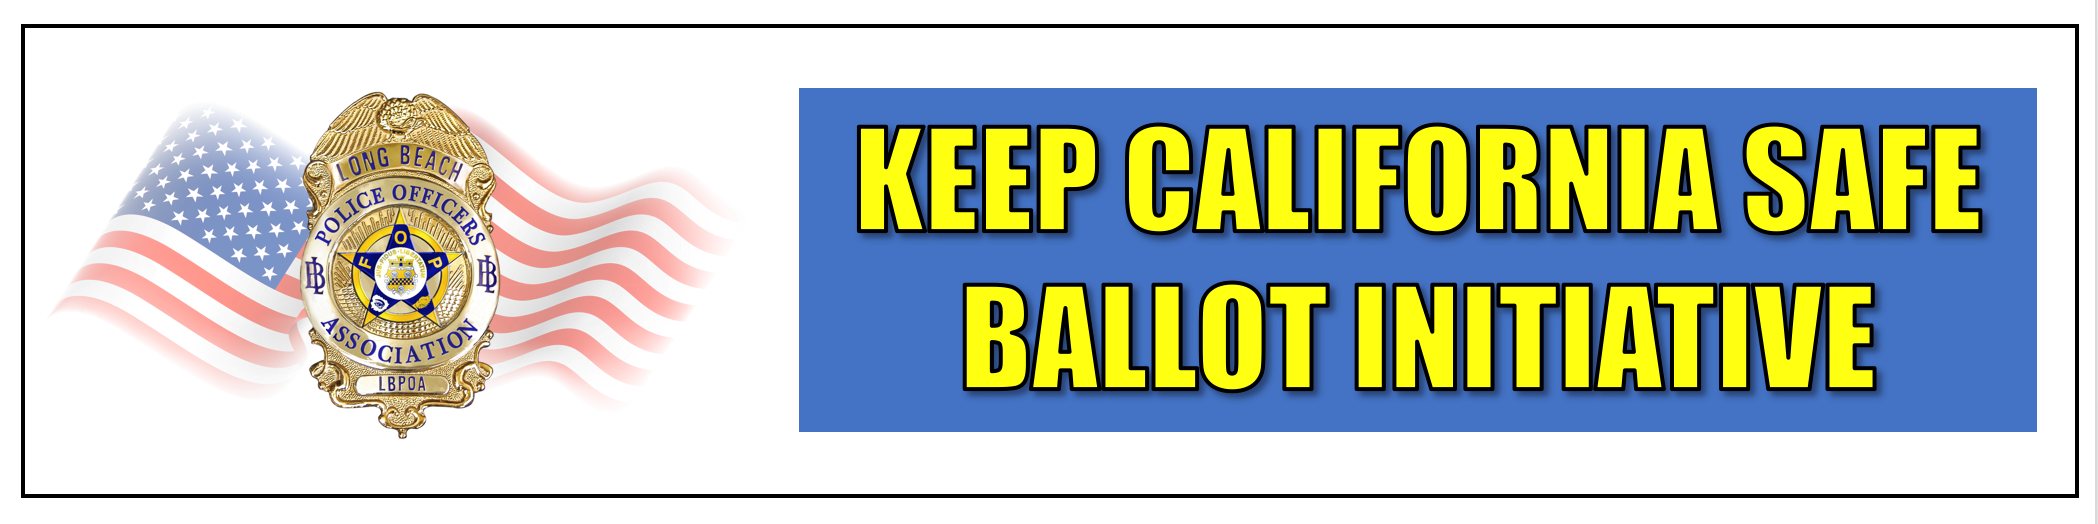 Keep-California-Safe-banner